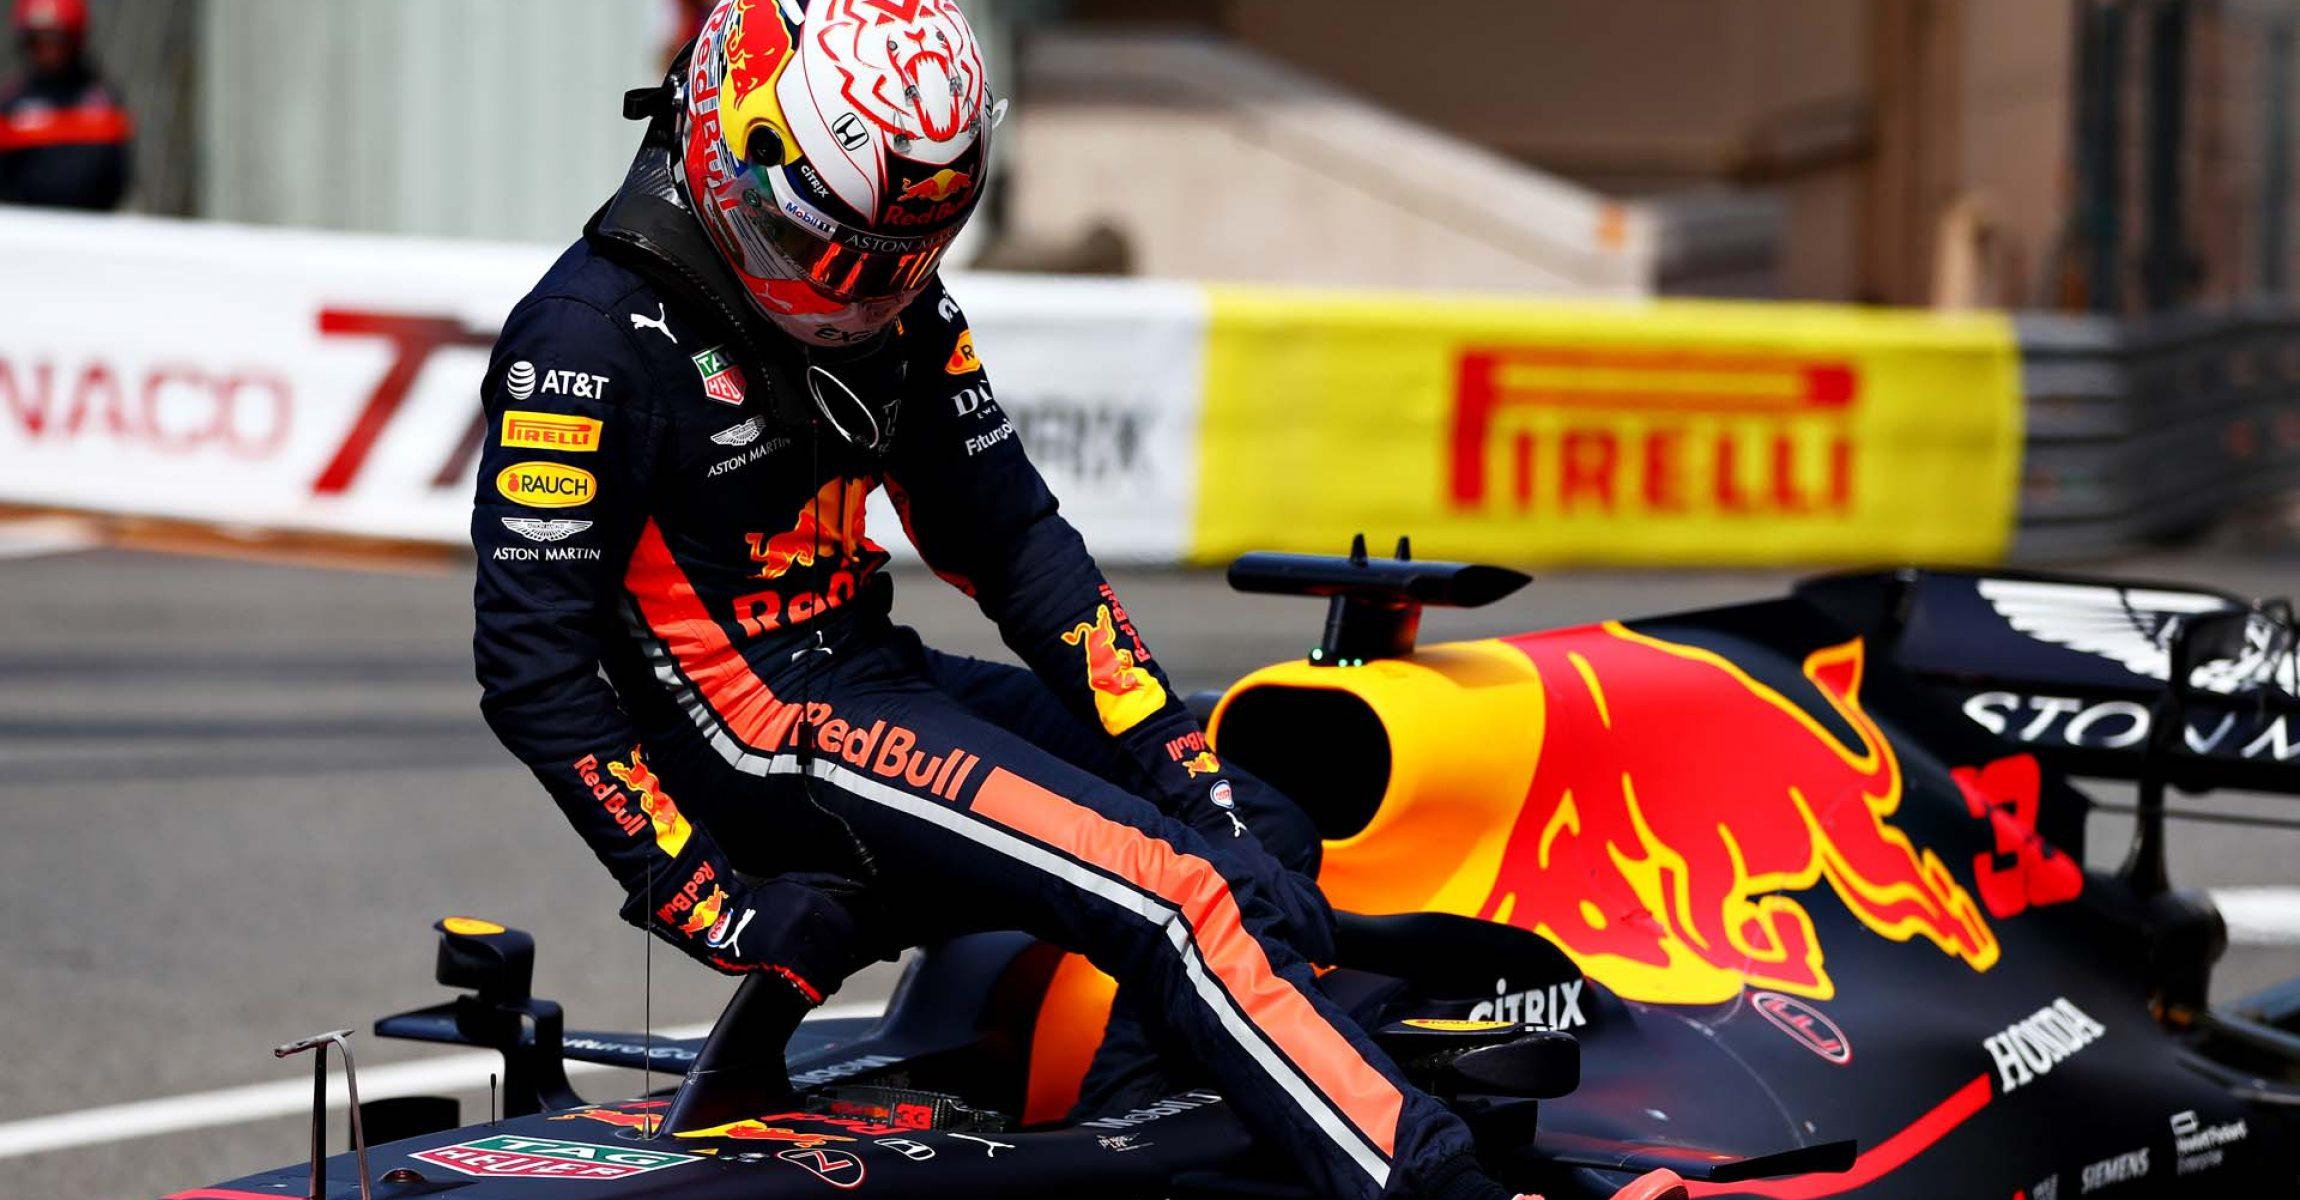 MONTE-CARLO, MONACO - MAY 25: Third place qualifier Max Verstappen of Netherlands and Red Bull Racing climbs from his car in parc ferme during qualifying for the F1 Grand Prix of Monaco at Circuit de Monaco on May 25, 2019 in Monte-Carlo, Monaco. (Photo by Dan Istitene/Getty Images) // Getty Images / Red Bull Content Pool // AP-1ZEPYHAND2111 // Usage for editorial use only // Please go to www.redbullcontentpool.com for further information. //